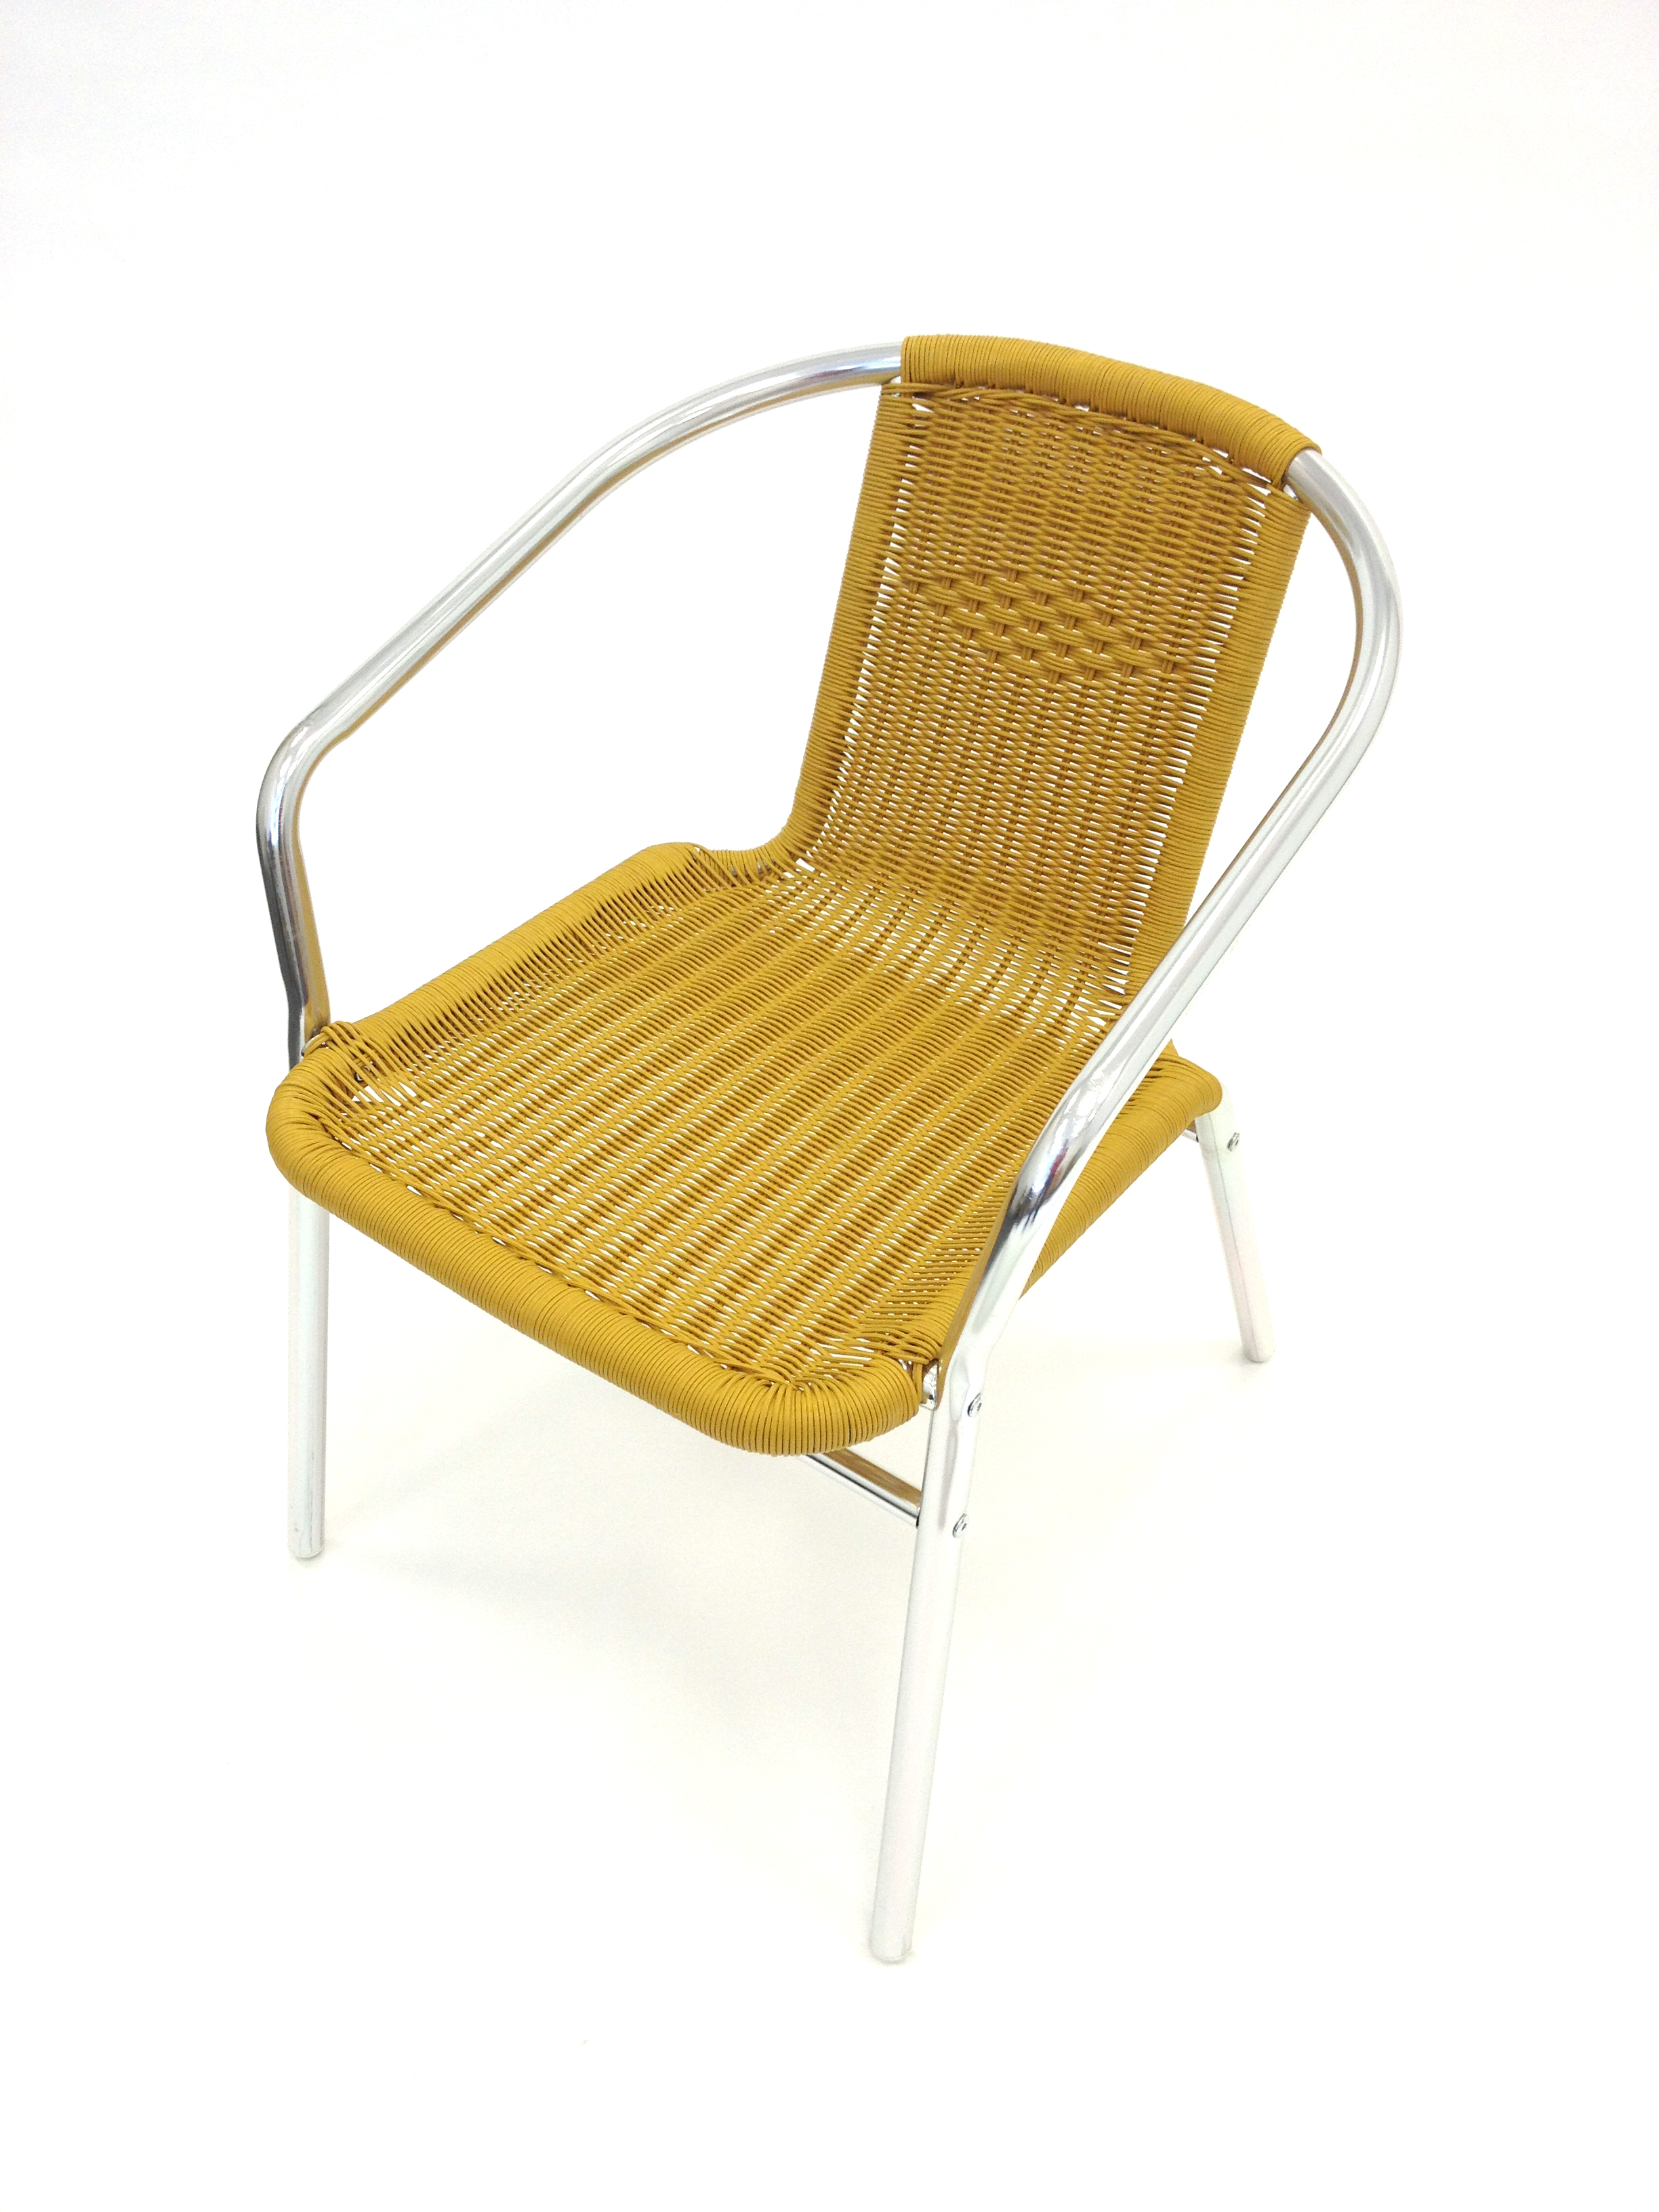 woven plastic garden chairs revolving chair base in ahmedabad sand yellow rattan with aluminium frame be